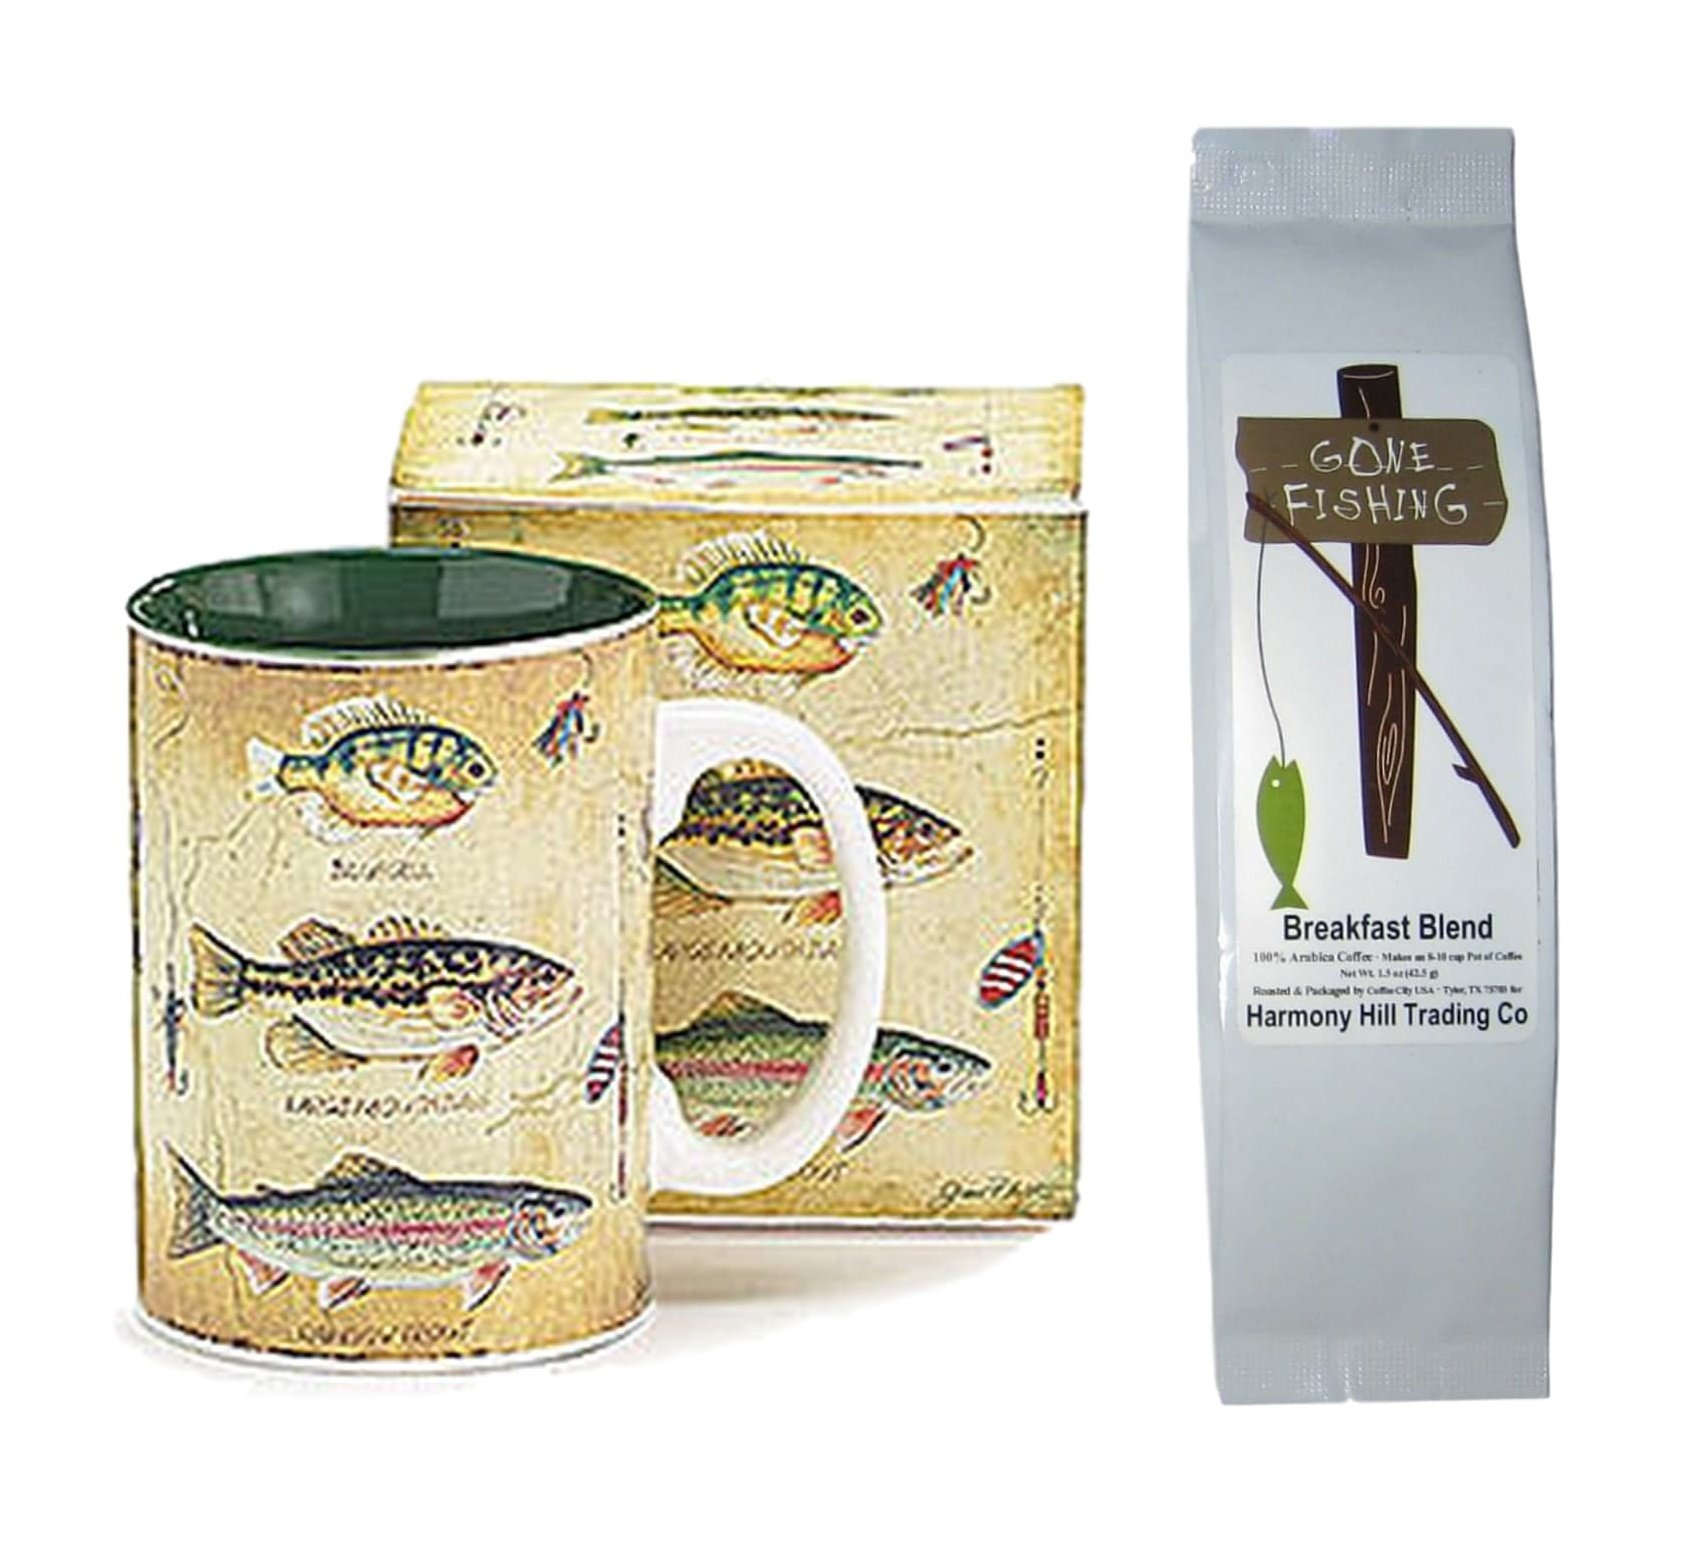 Bluegill Bass Trout Fish Lures Coffee Mug with Box and Gone Fishing Coffee Gift Set Bundle (2 Items)